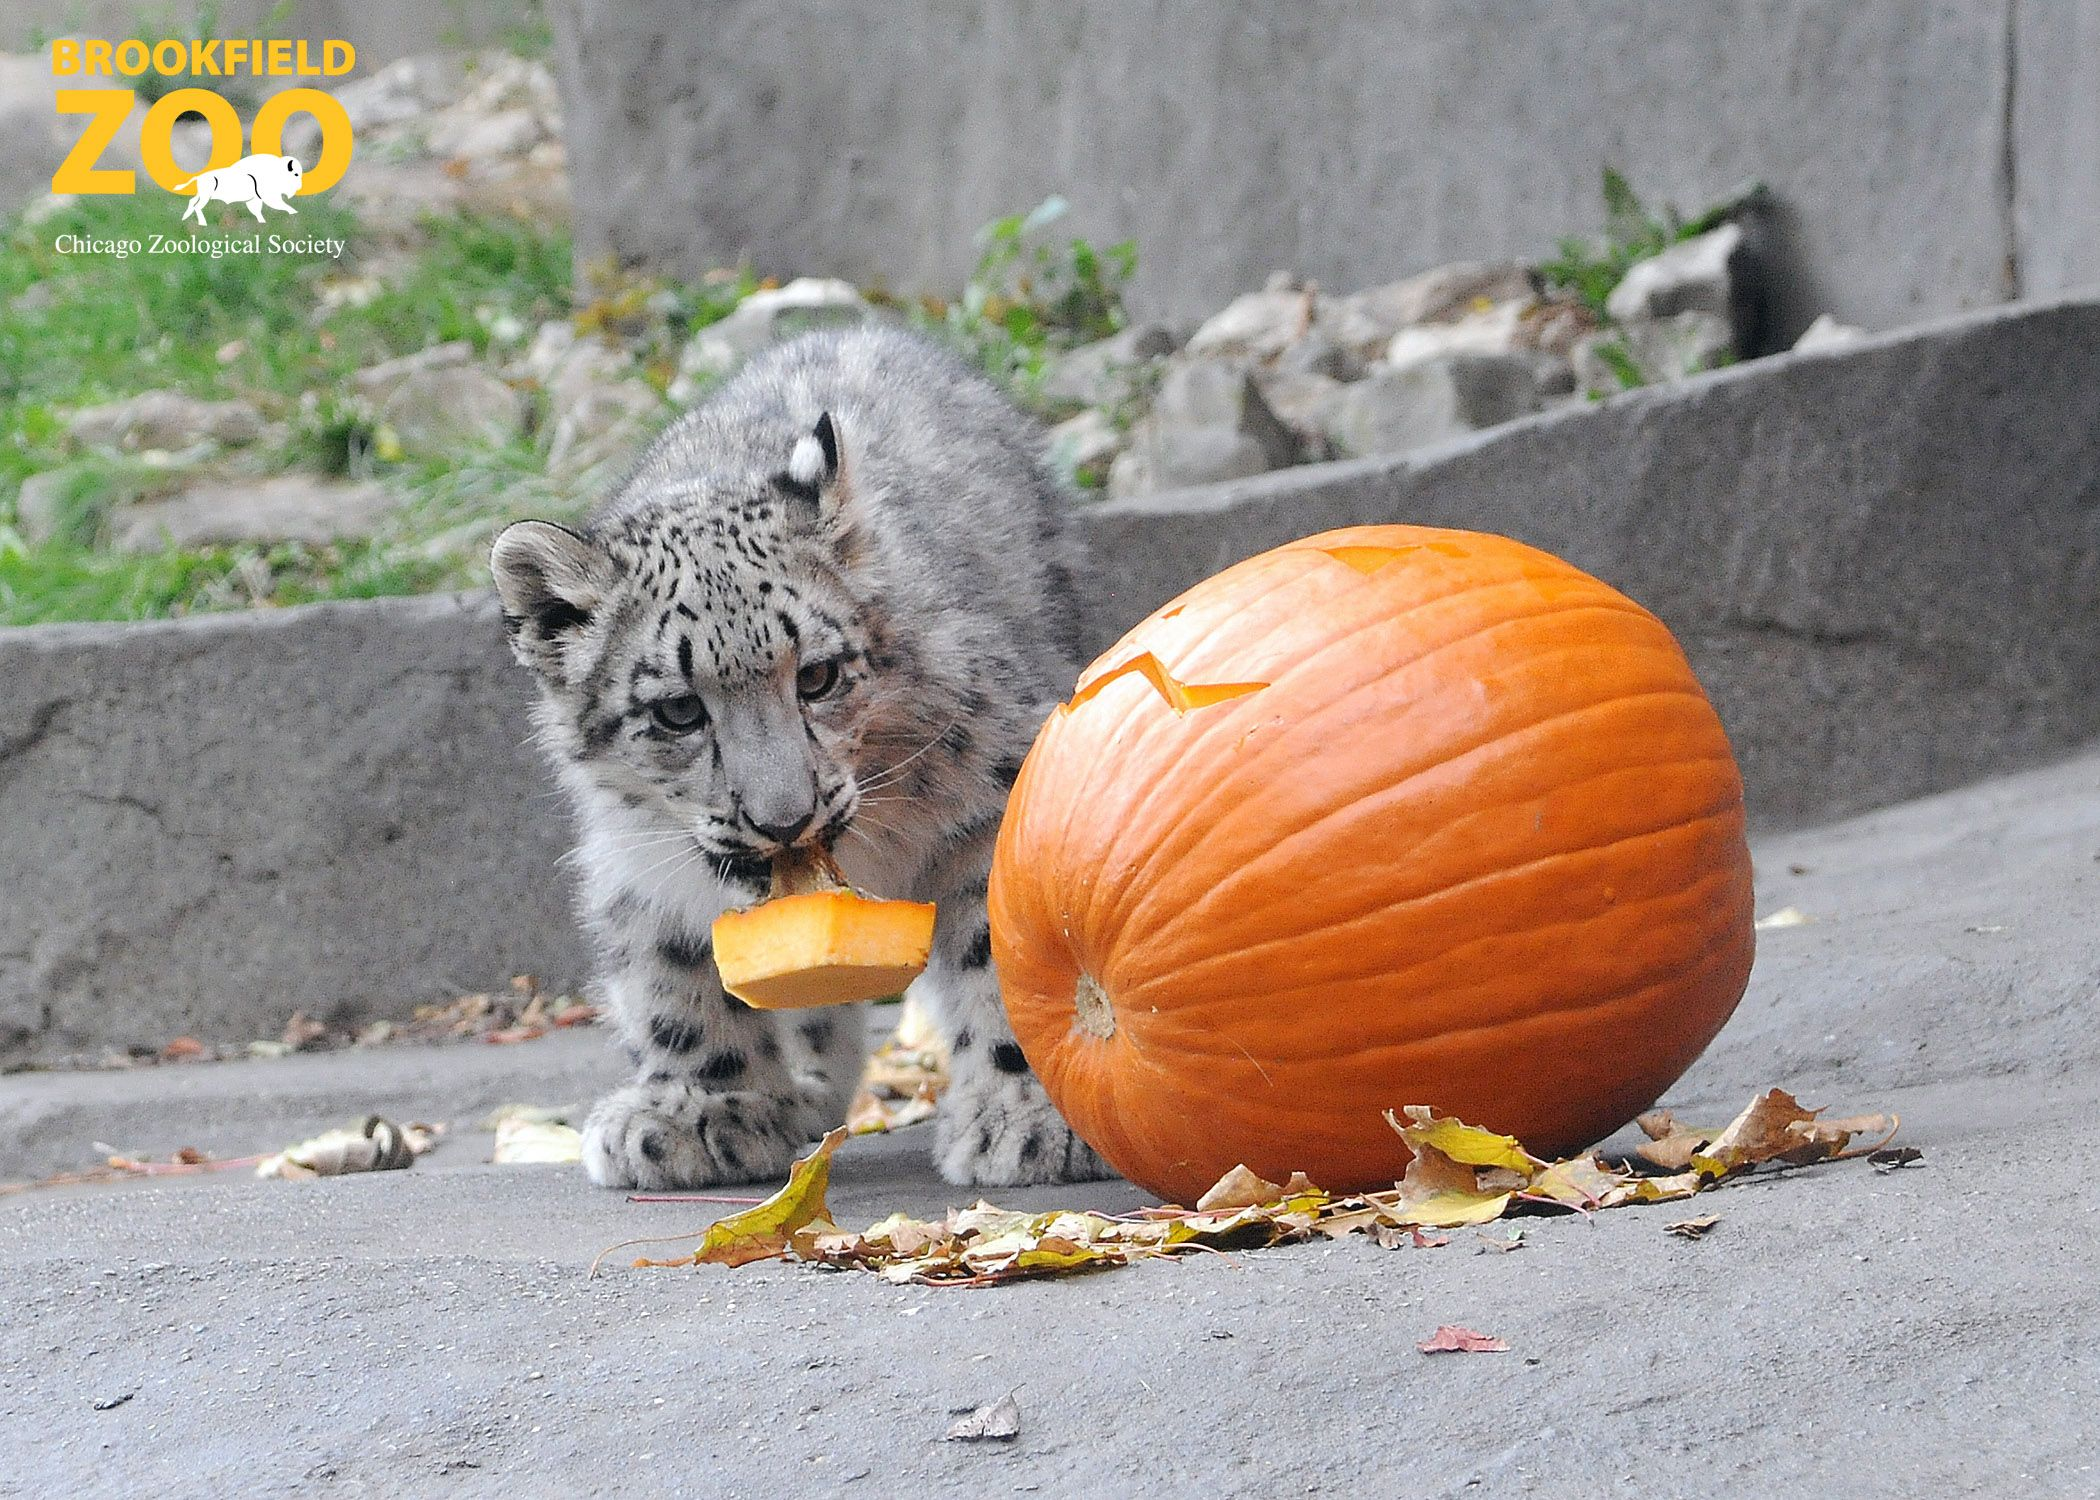 Everest, a 4½monthold snow leopard at Brookfield Zoo